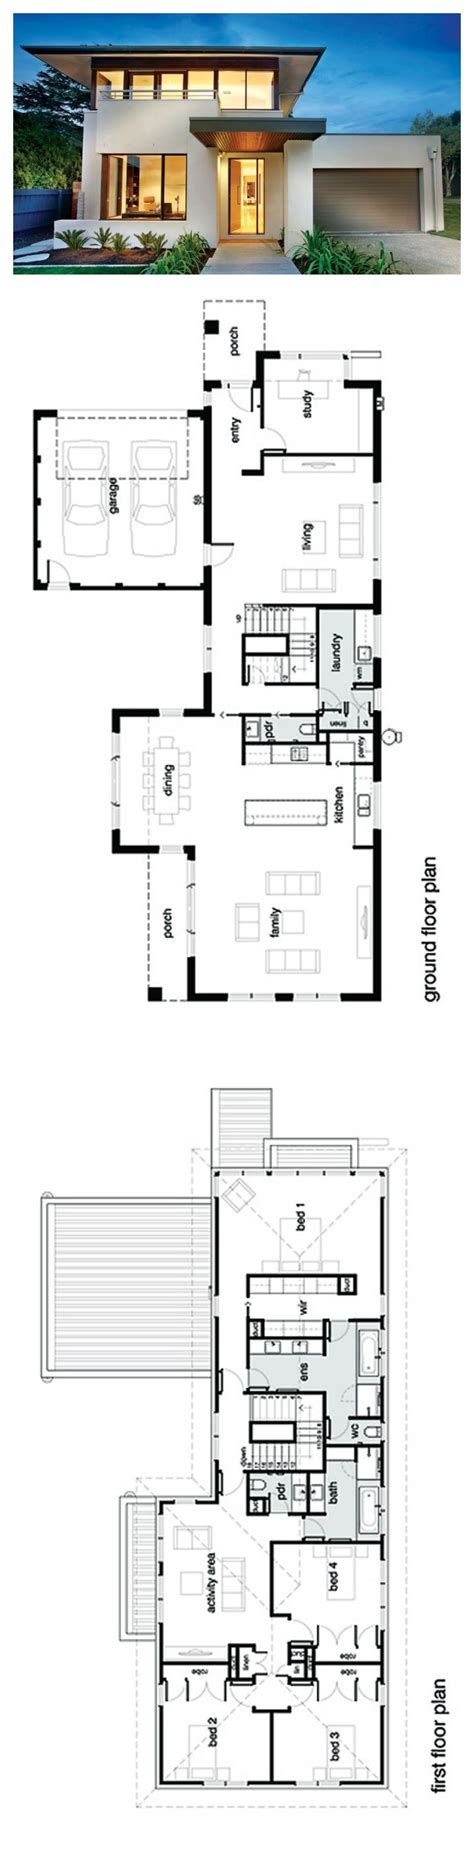 Modern Houses Floor Plans The 25 Best Ideas About Modern House Plans On Modern House Floor Plans Modern